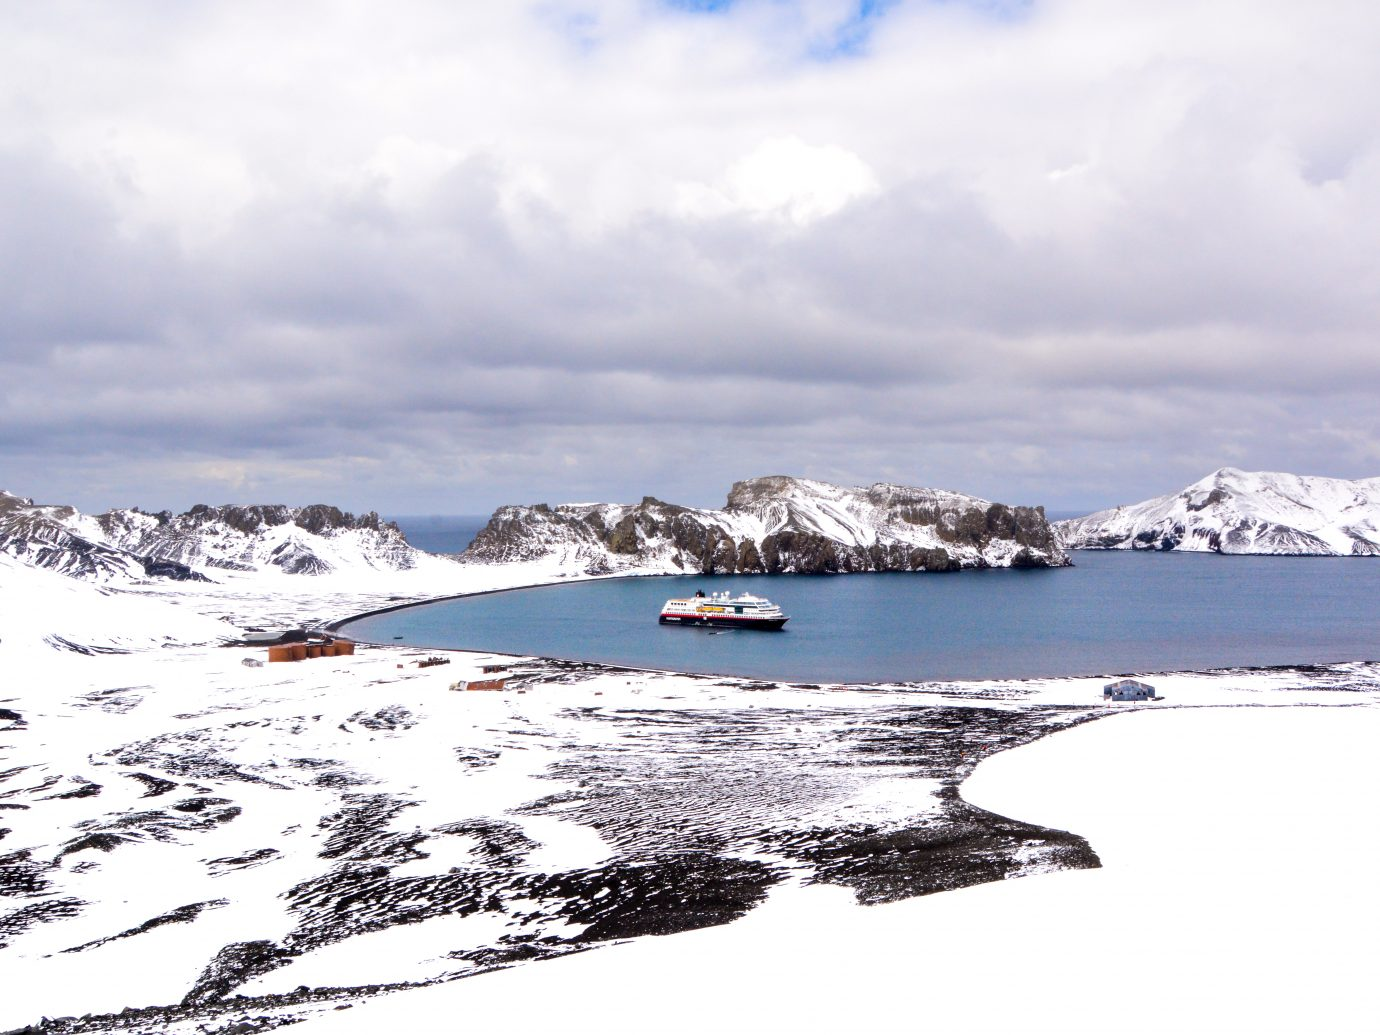 Deception Island with Midnatsol